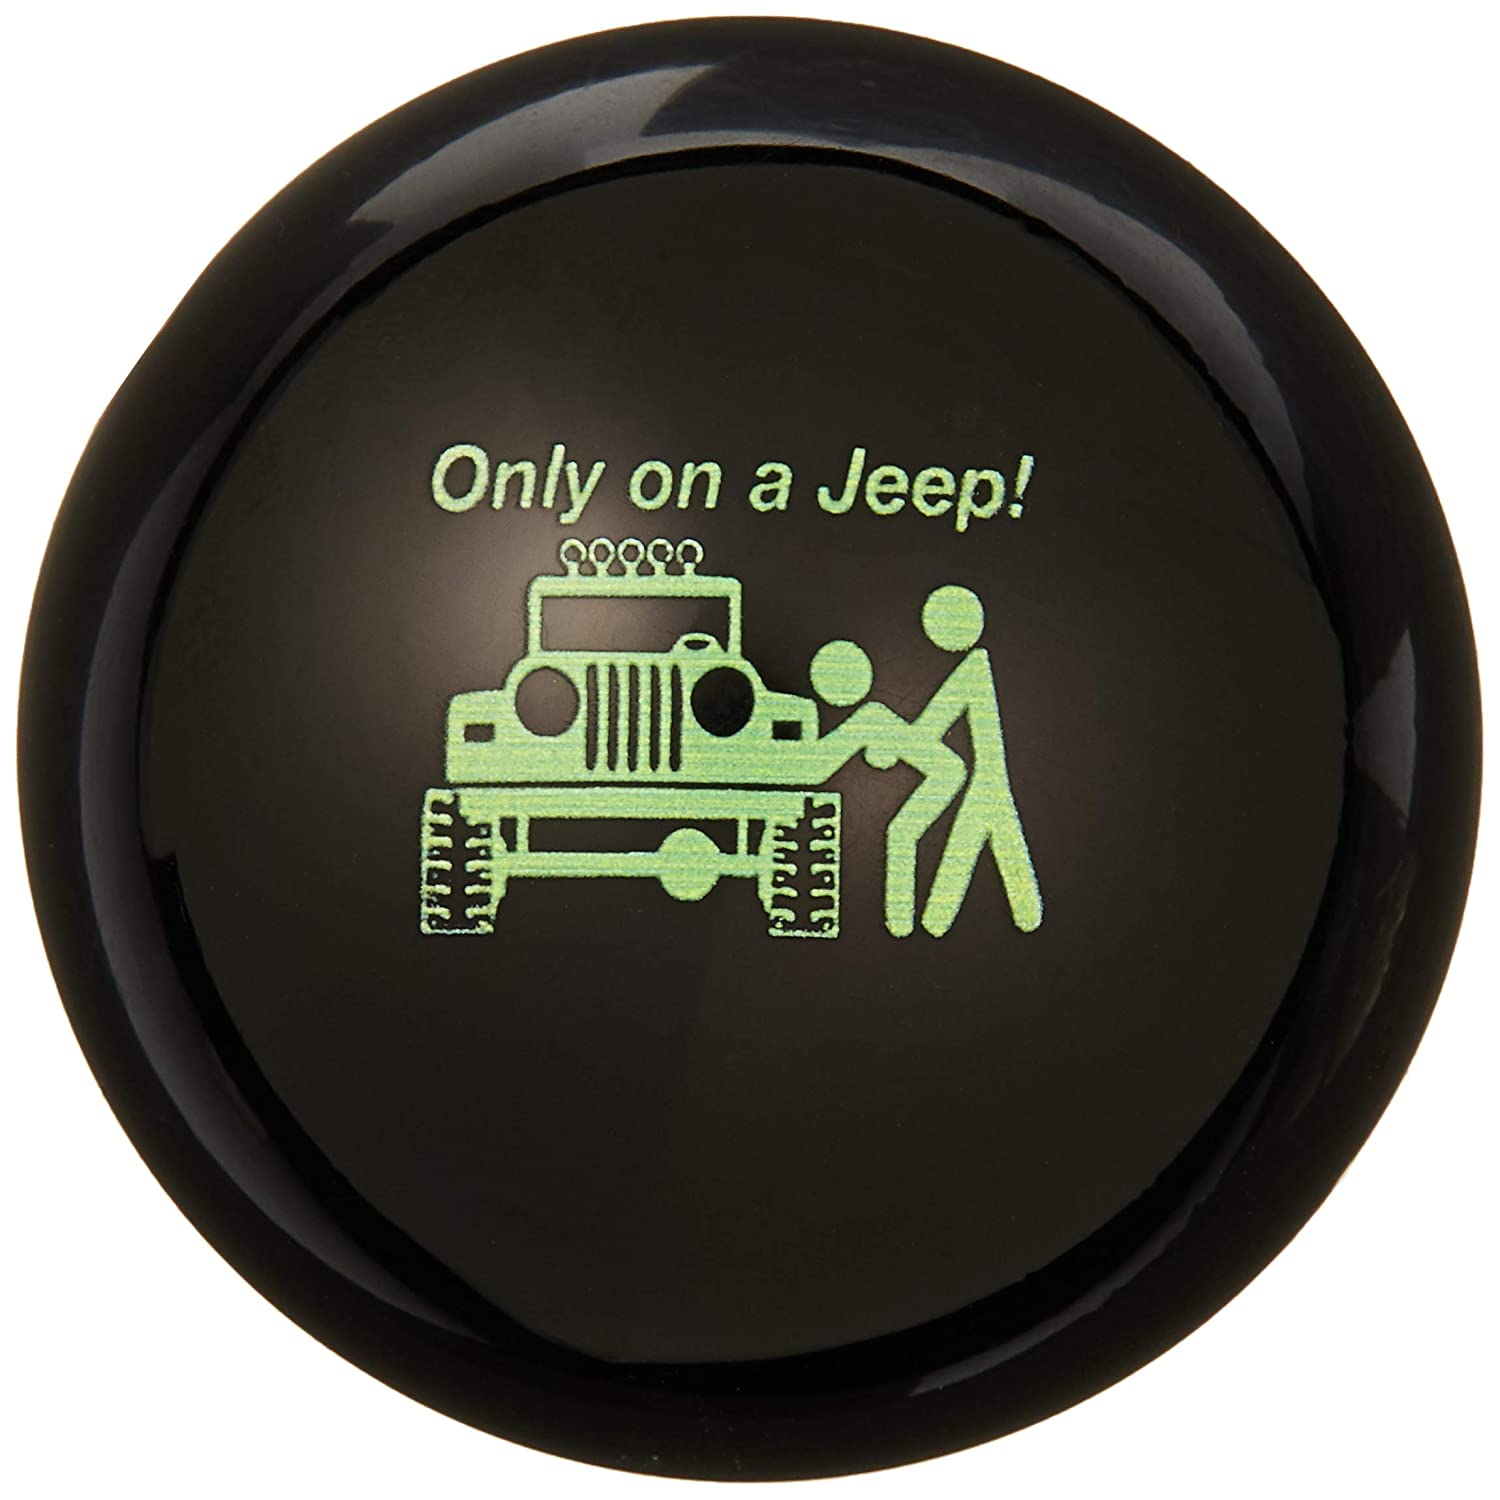 American Shifter 103773 Black Shift Knob with M16 x 1.5 Insert Green Only On A Jeep